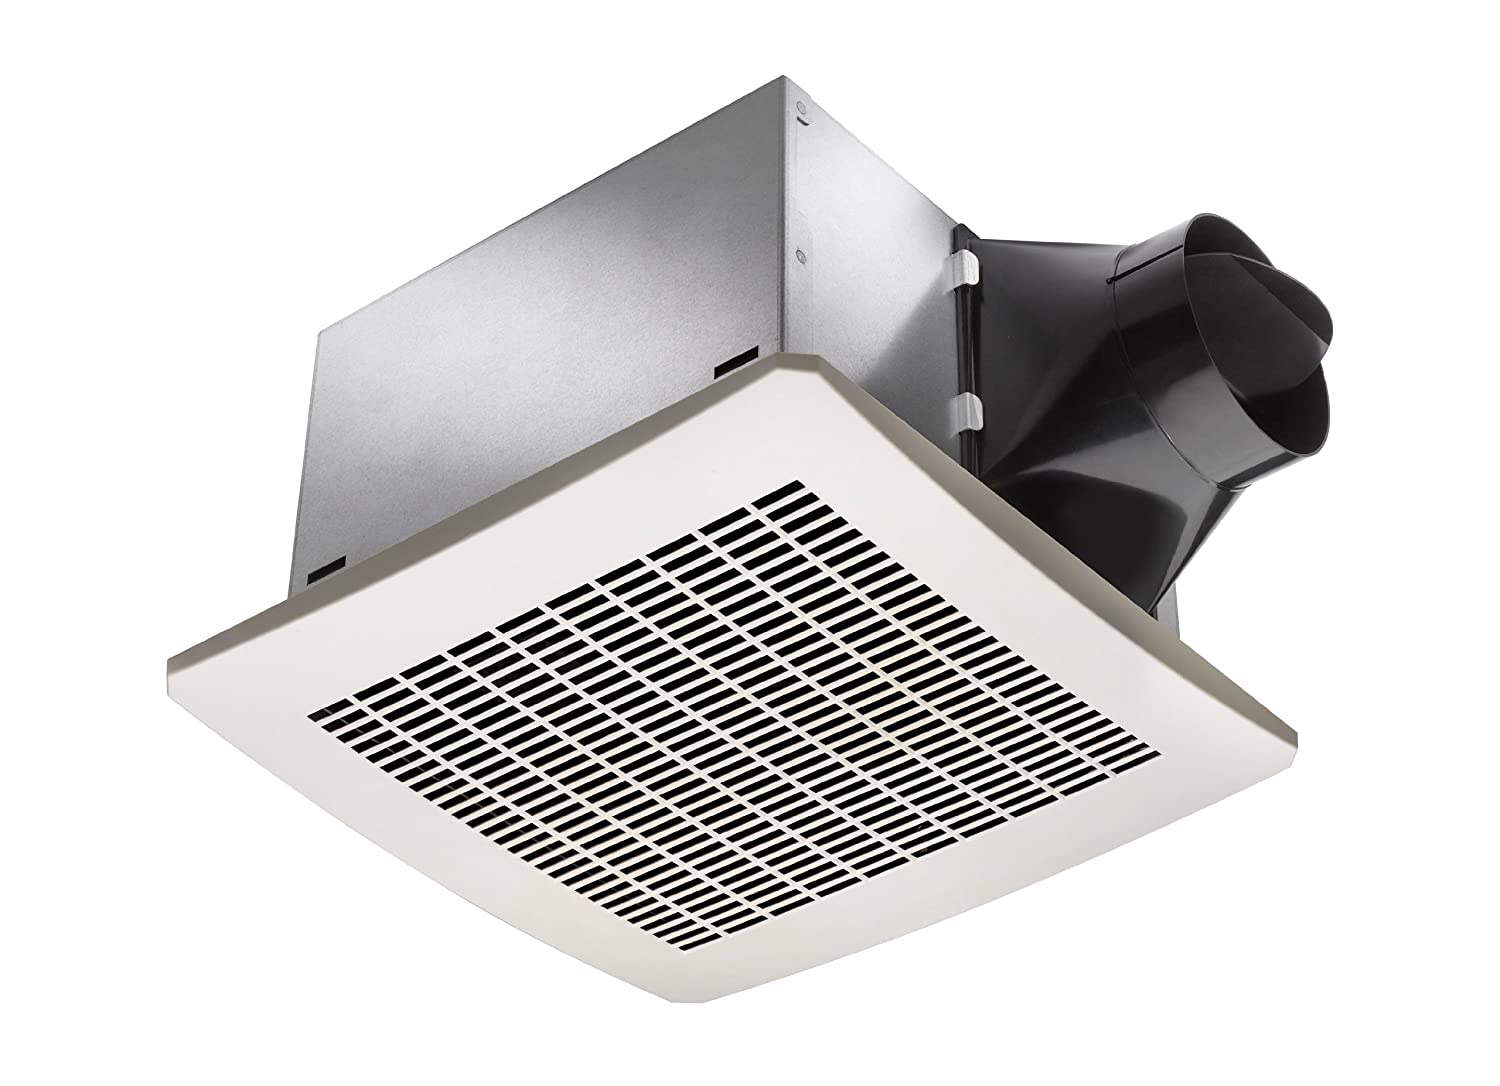 Superieur Amazon.com: Delta Electronics VFB25ADH Breez 110 CFM Humidity Sensor Exhaust  Fan, 1.2 Sones: Home Improvement